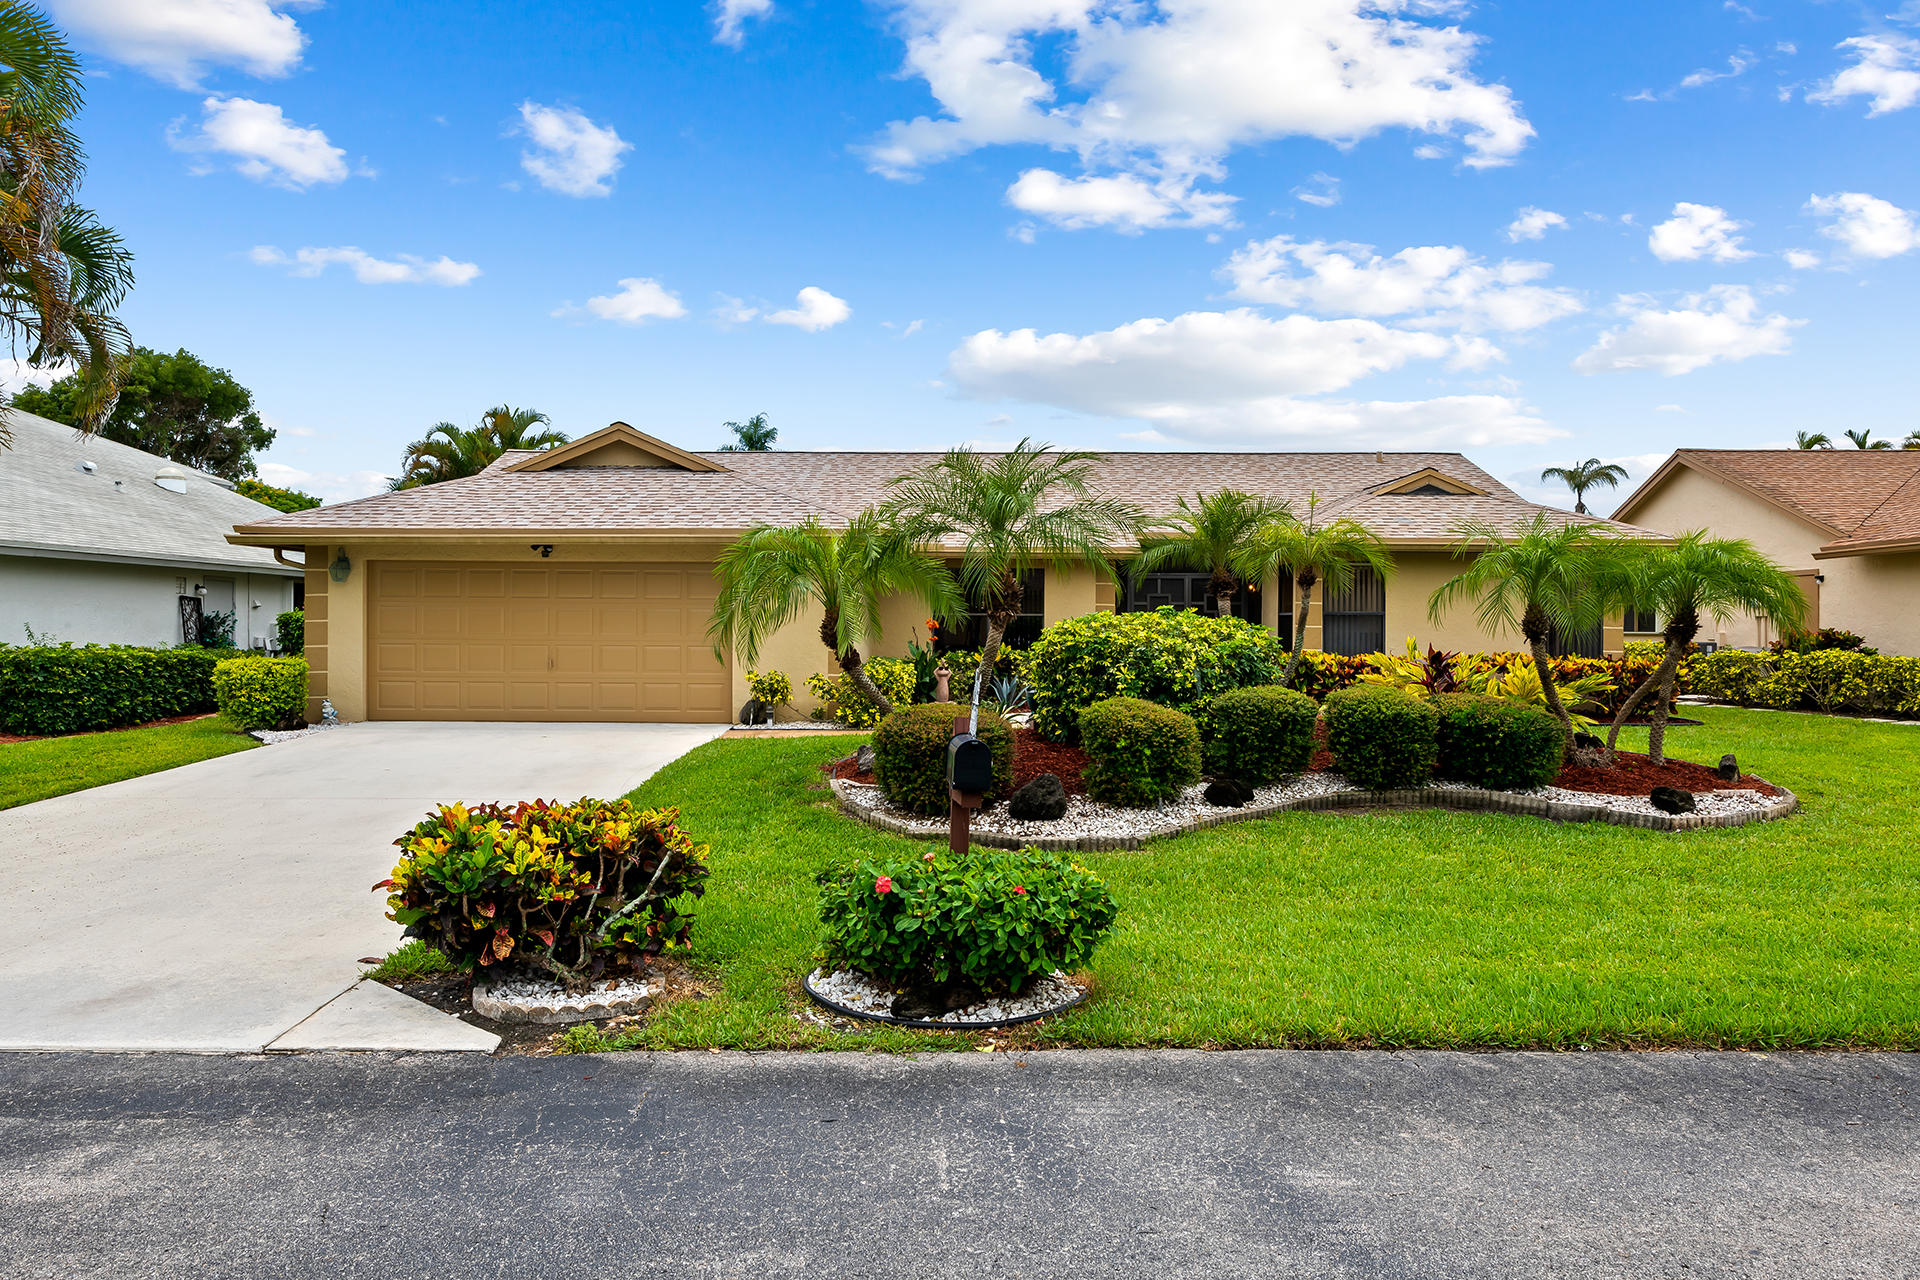 3180 NW 15th Street  For Sale 10726444, FL